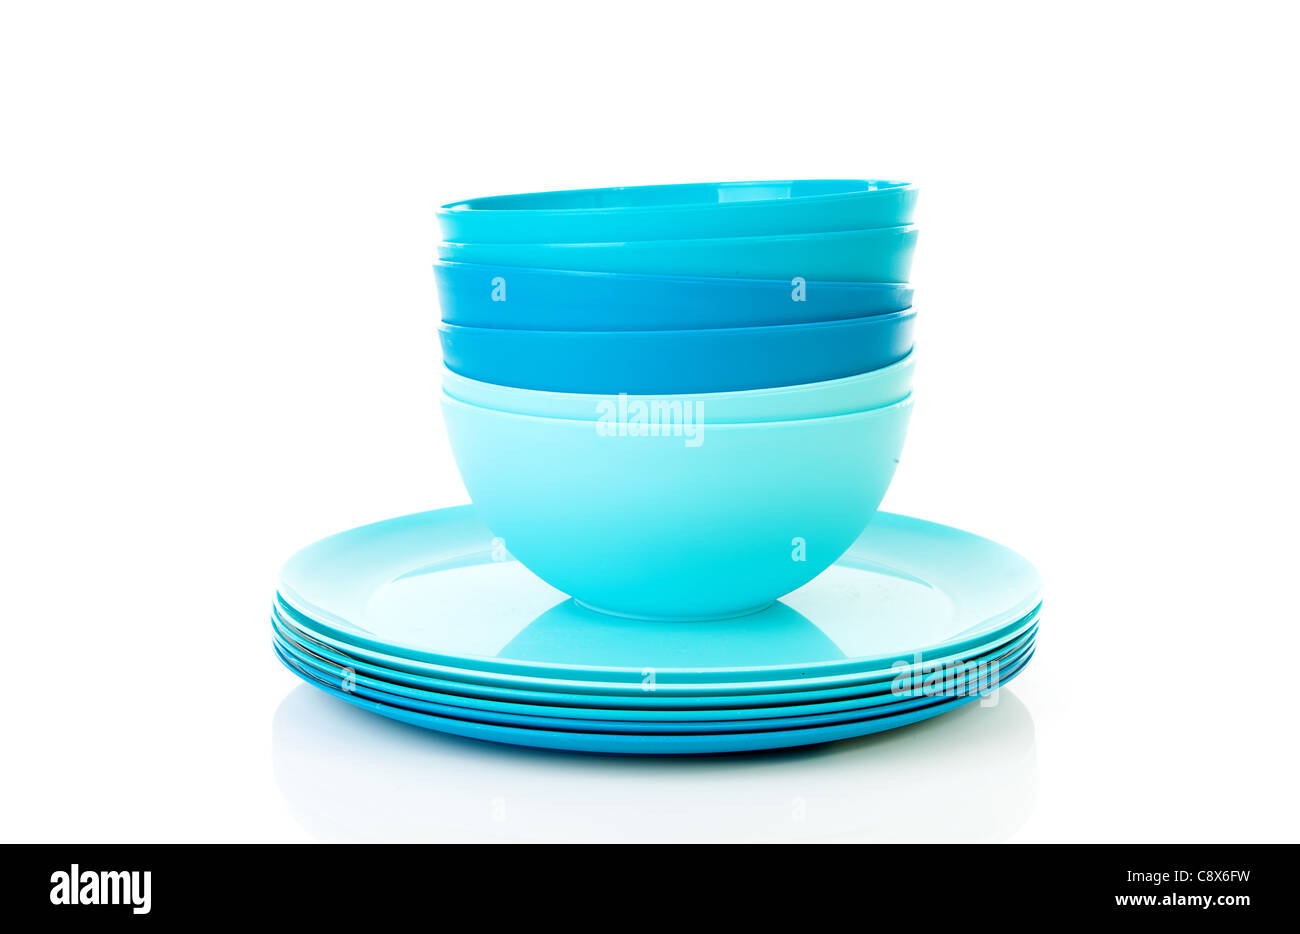 Pile of blue plastic plates and bowls over white background  sc 1 st  Alamy & Pile of blue plastic plates and bowls over white background Stock ...